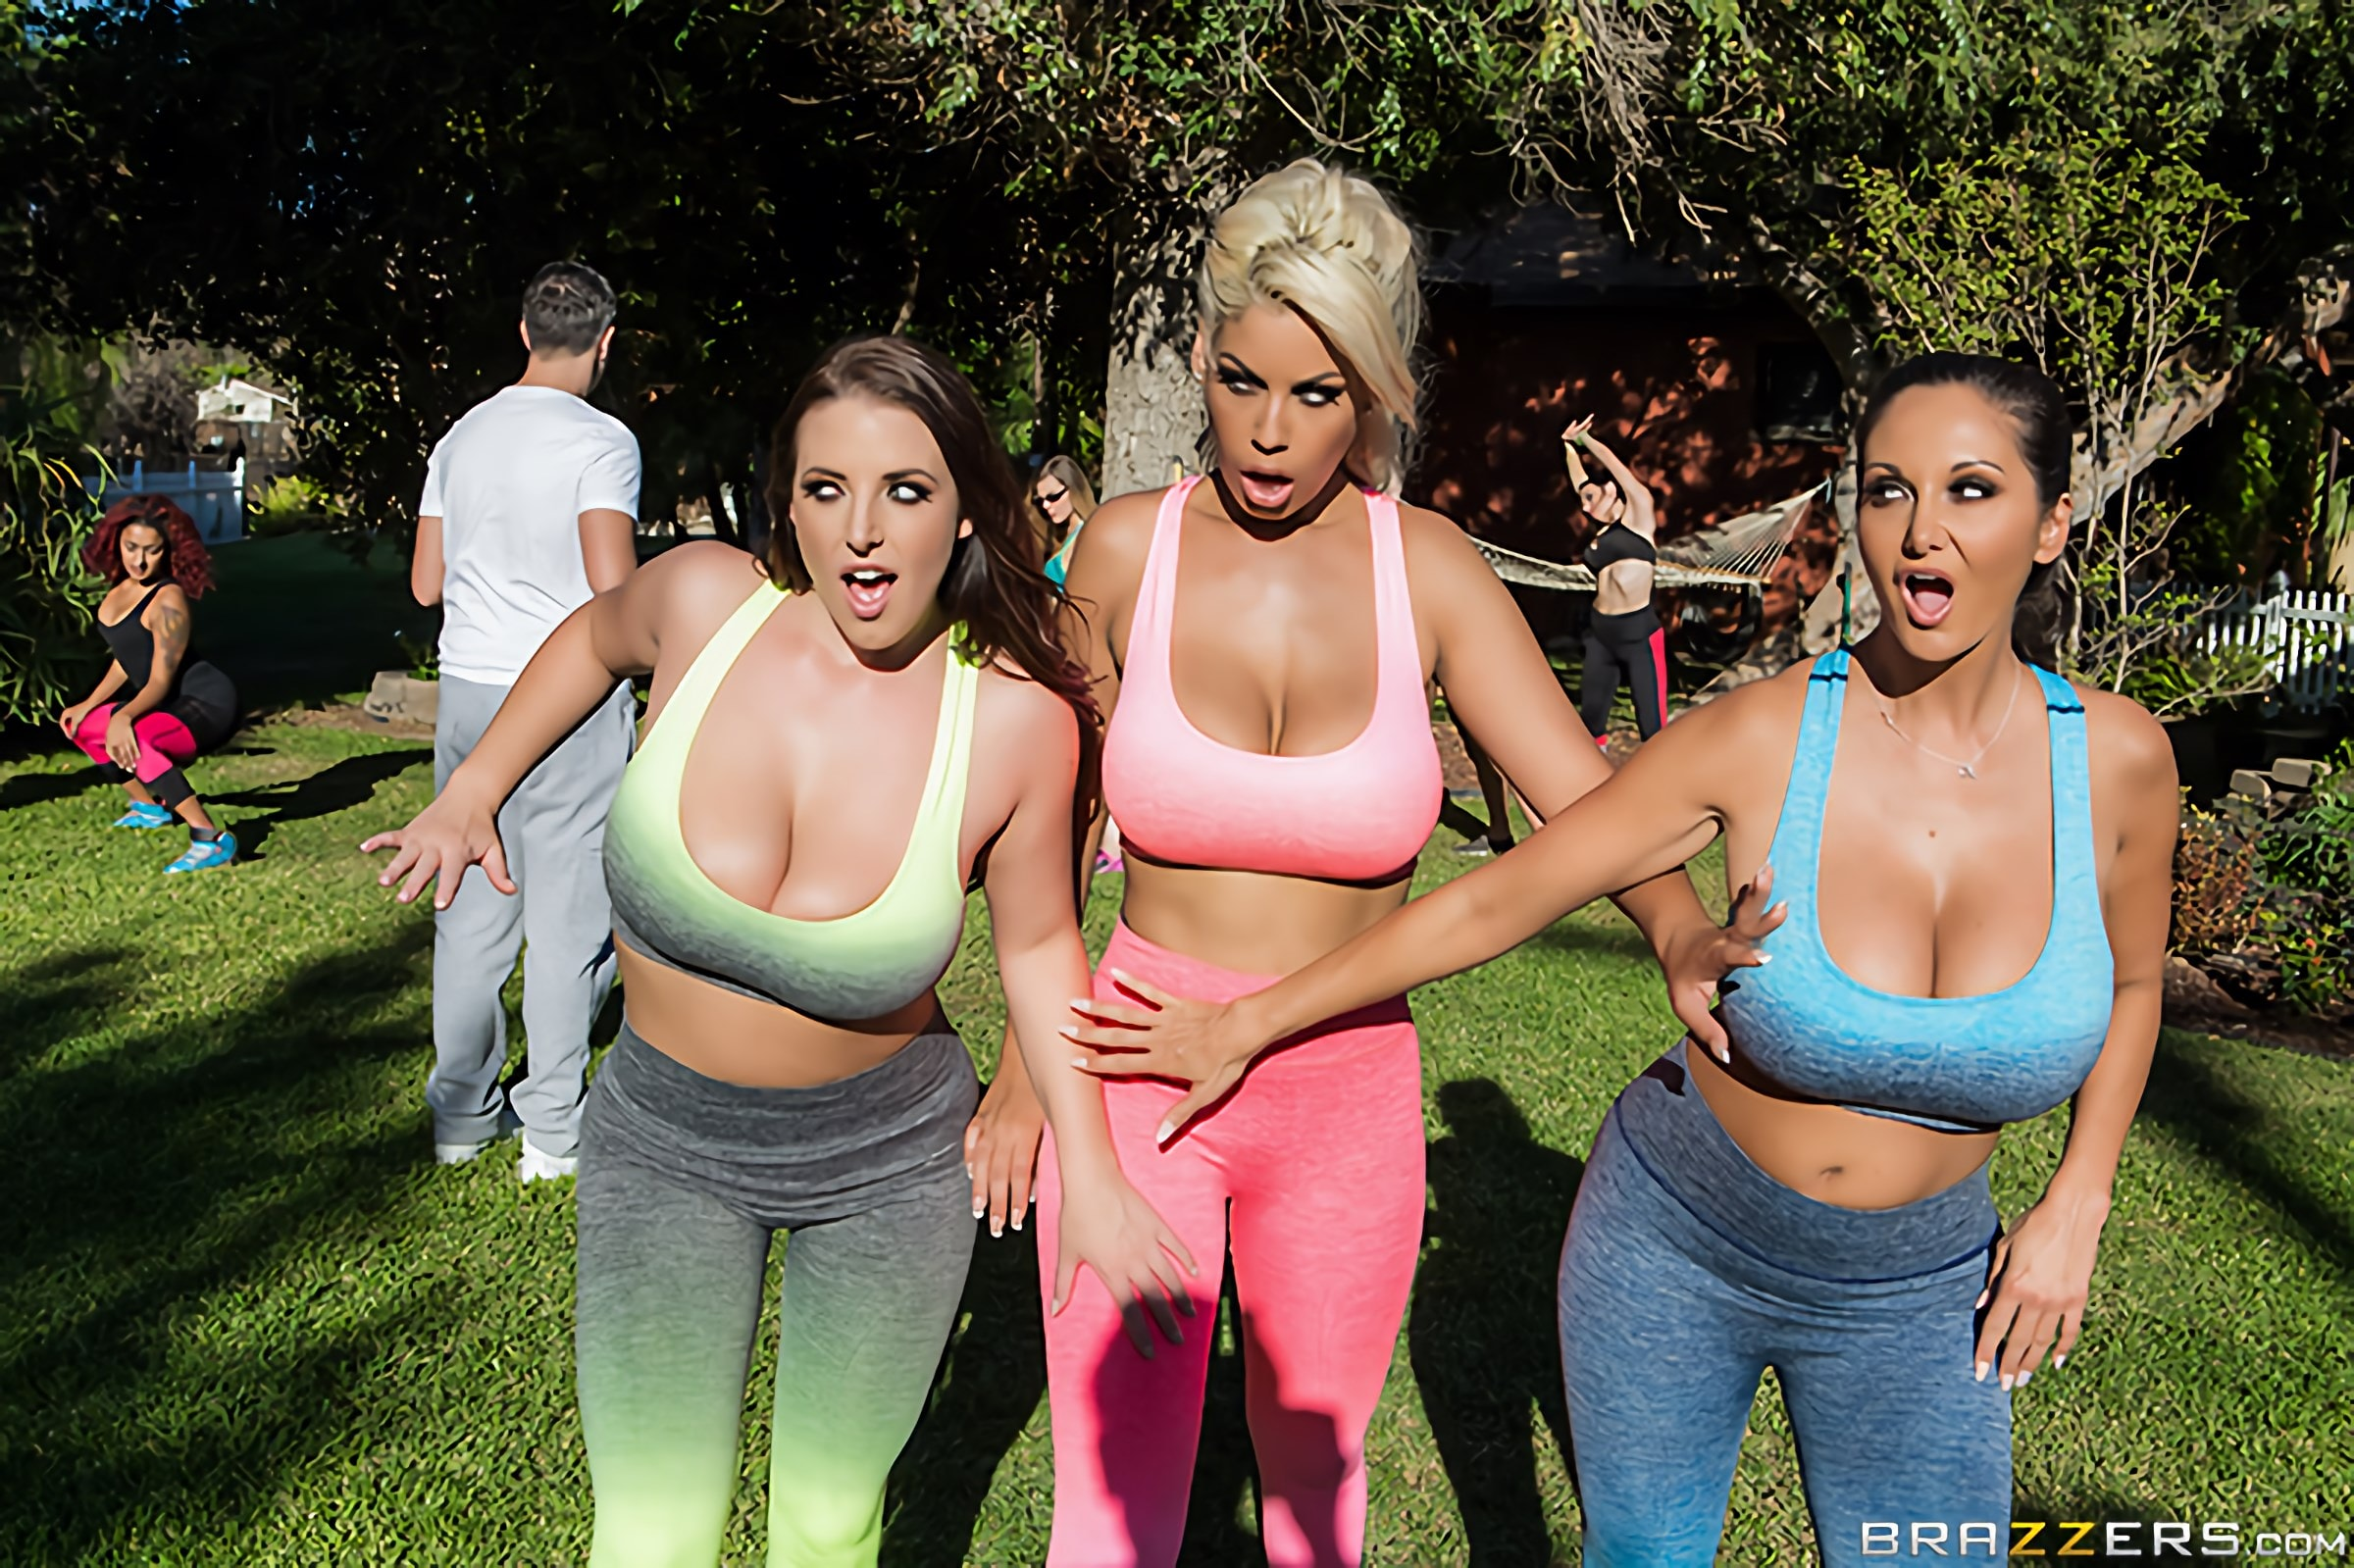 Brazzers 'Chasing That Big D' starring Bridgette B (Photo 6)